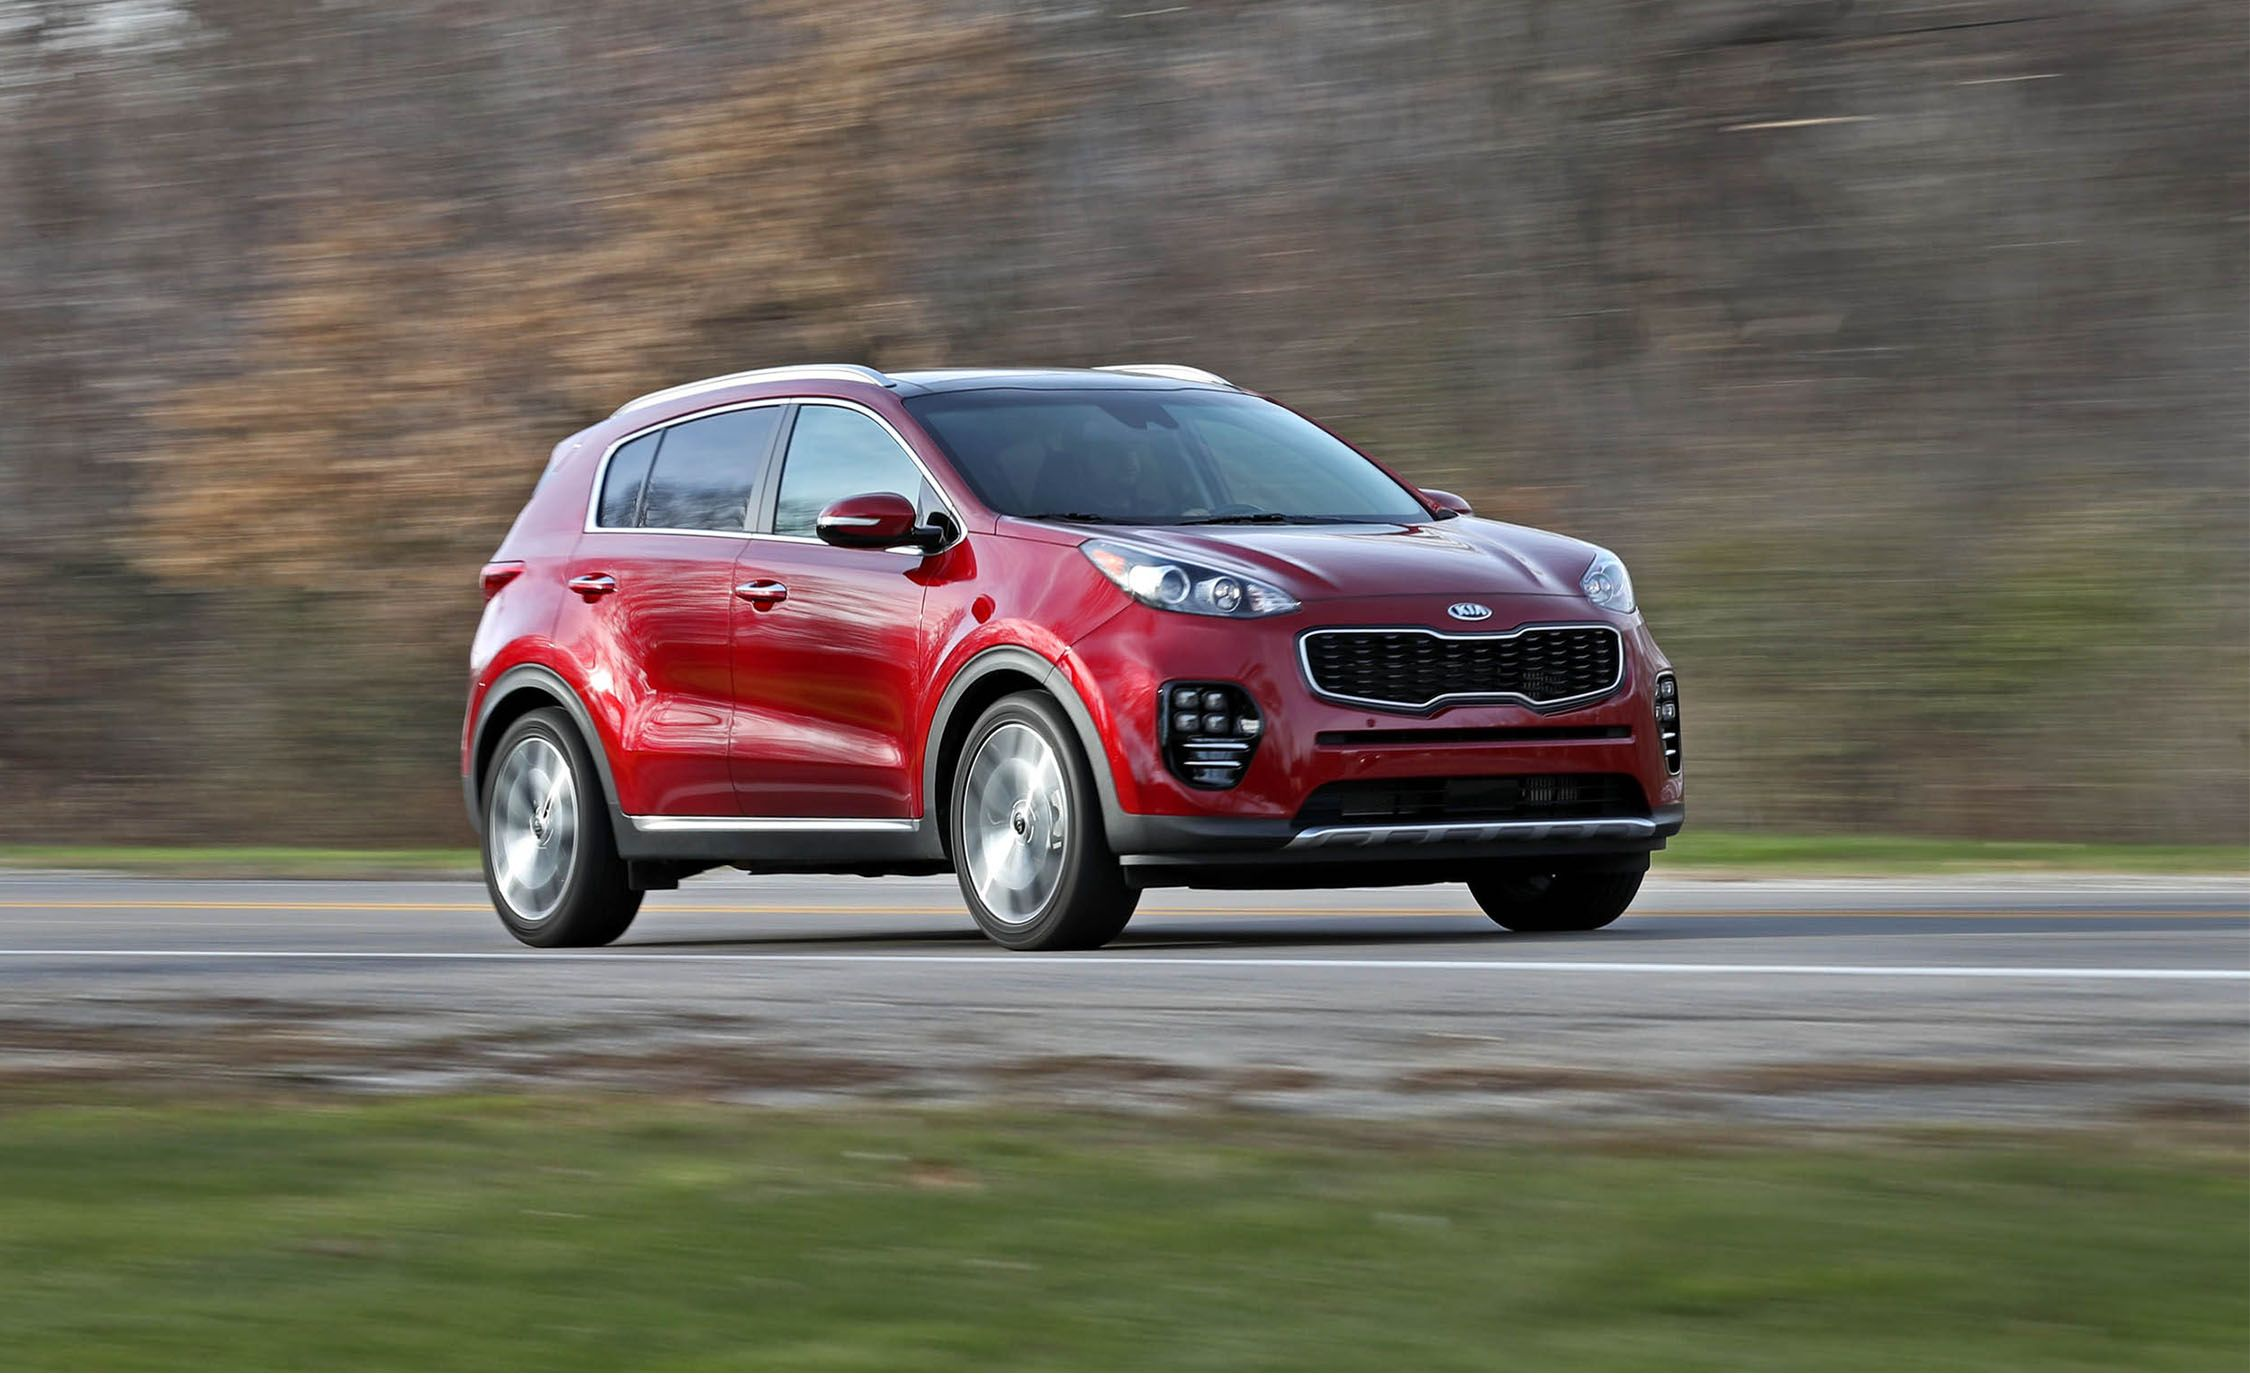 2018 Kia Sportage | In-Depth Model Review | Car and Driver